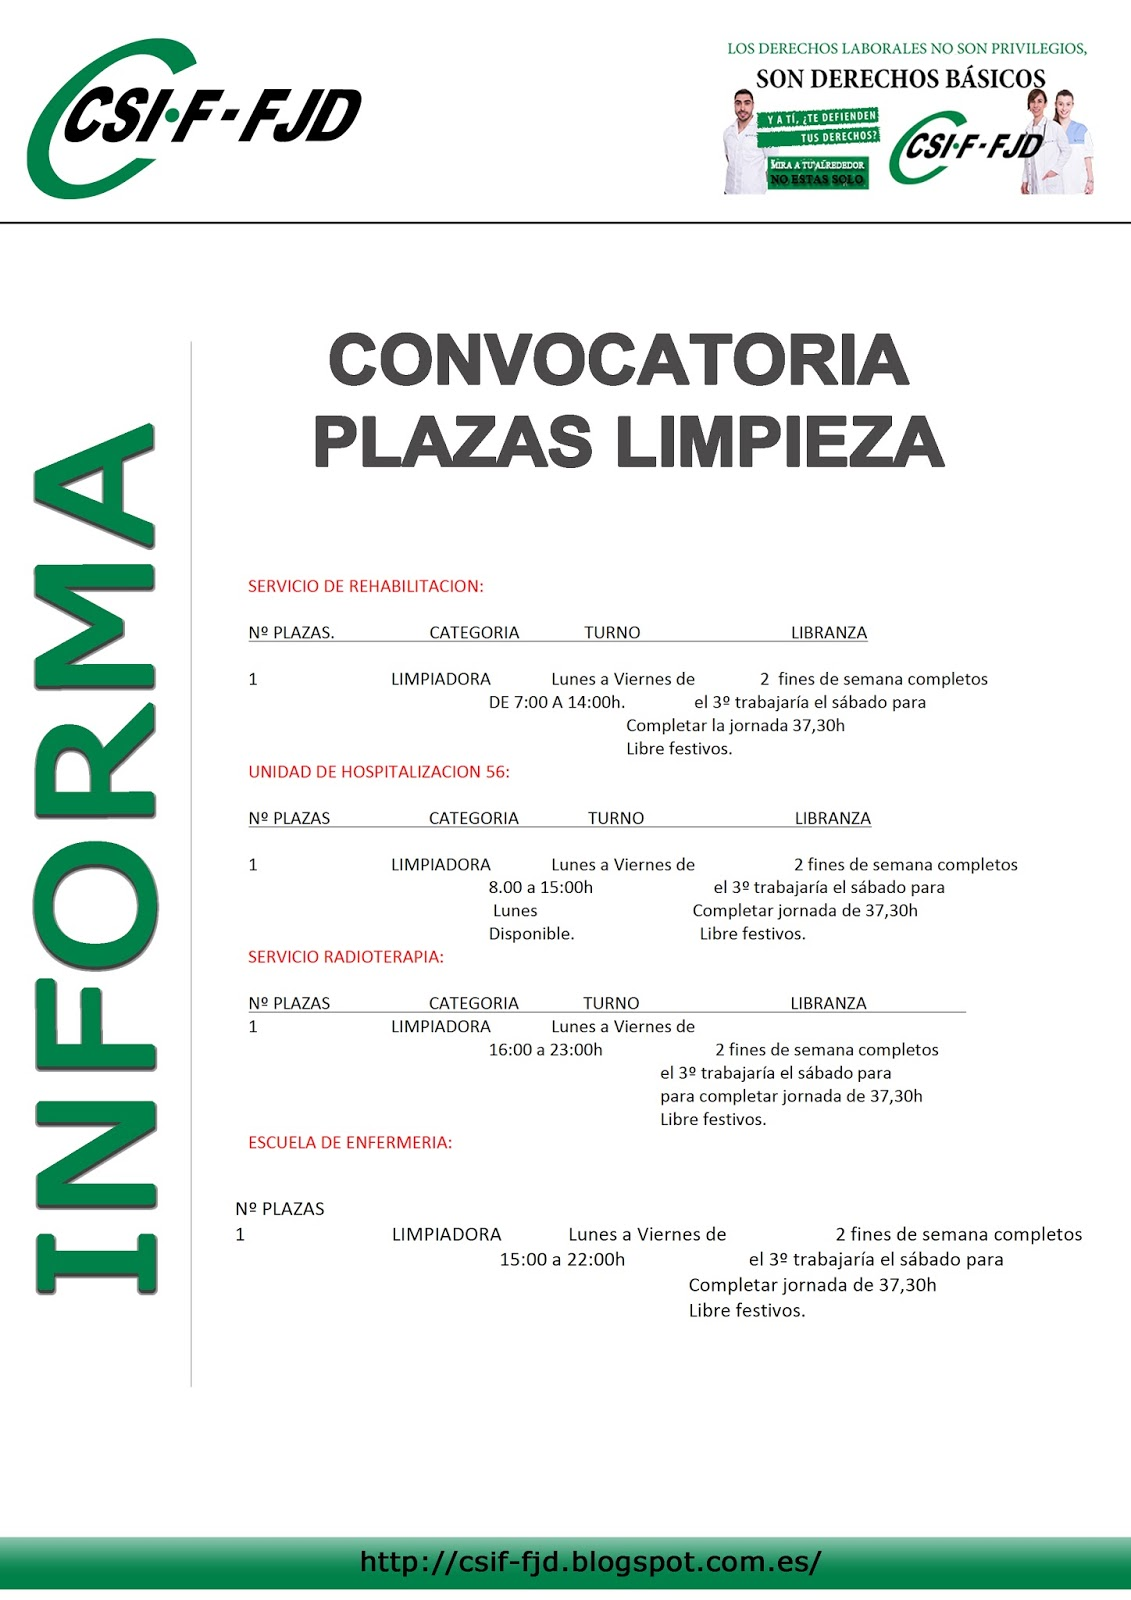 Csif fjd convocatoria de plazas en limpieza for Sep convocatoria plazas 2016